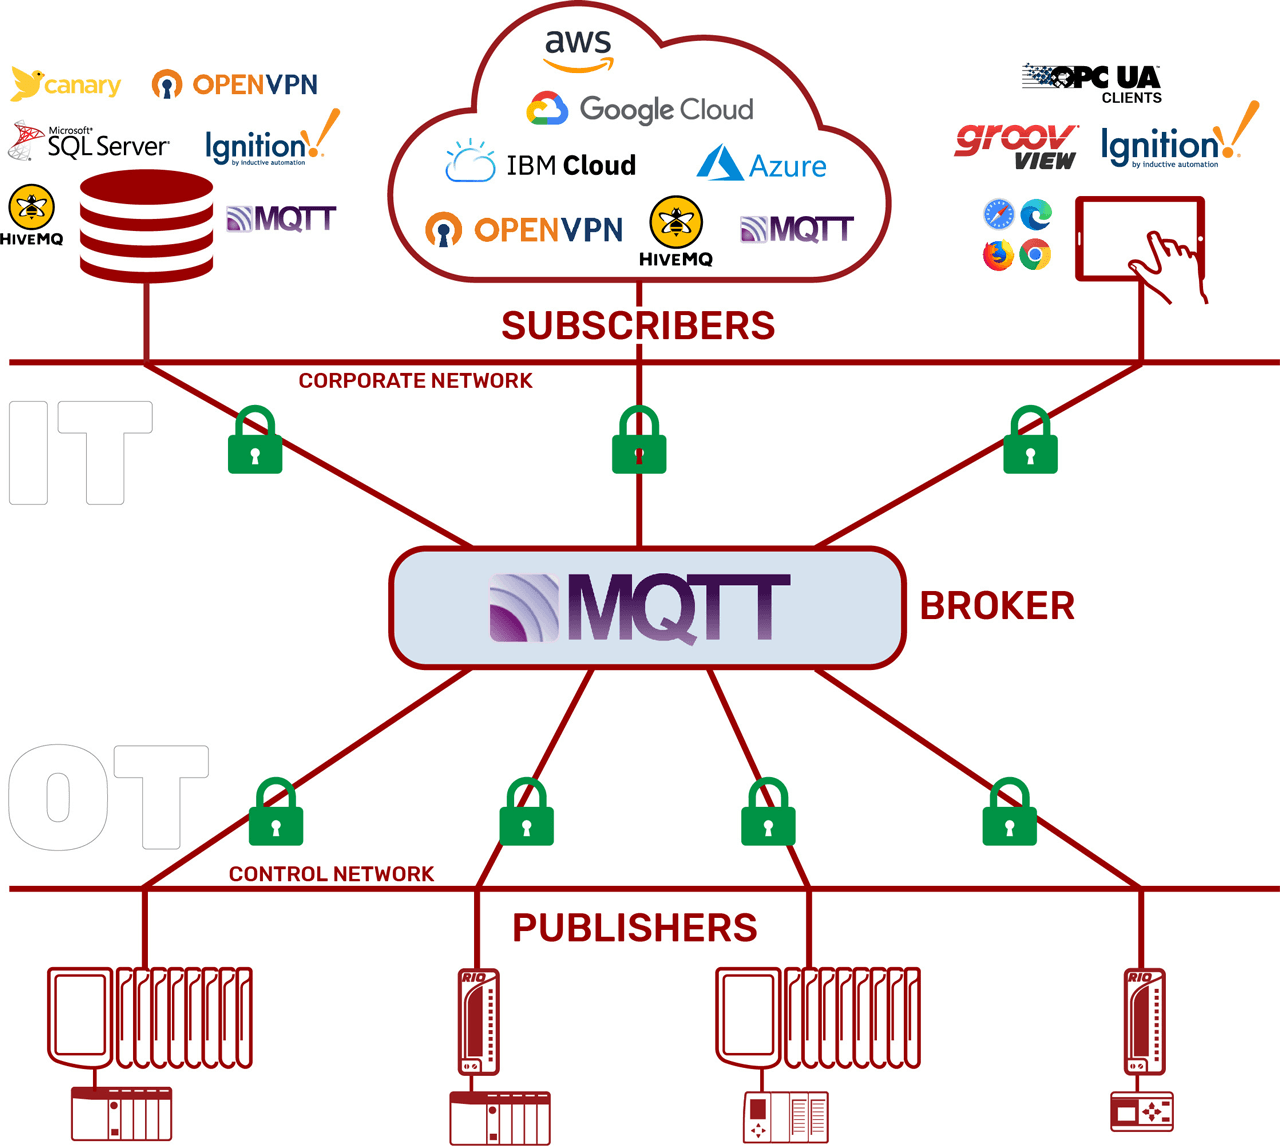 In the MQTT architecture, publishers and subscribers from across the organization connect to a common data broker.